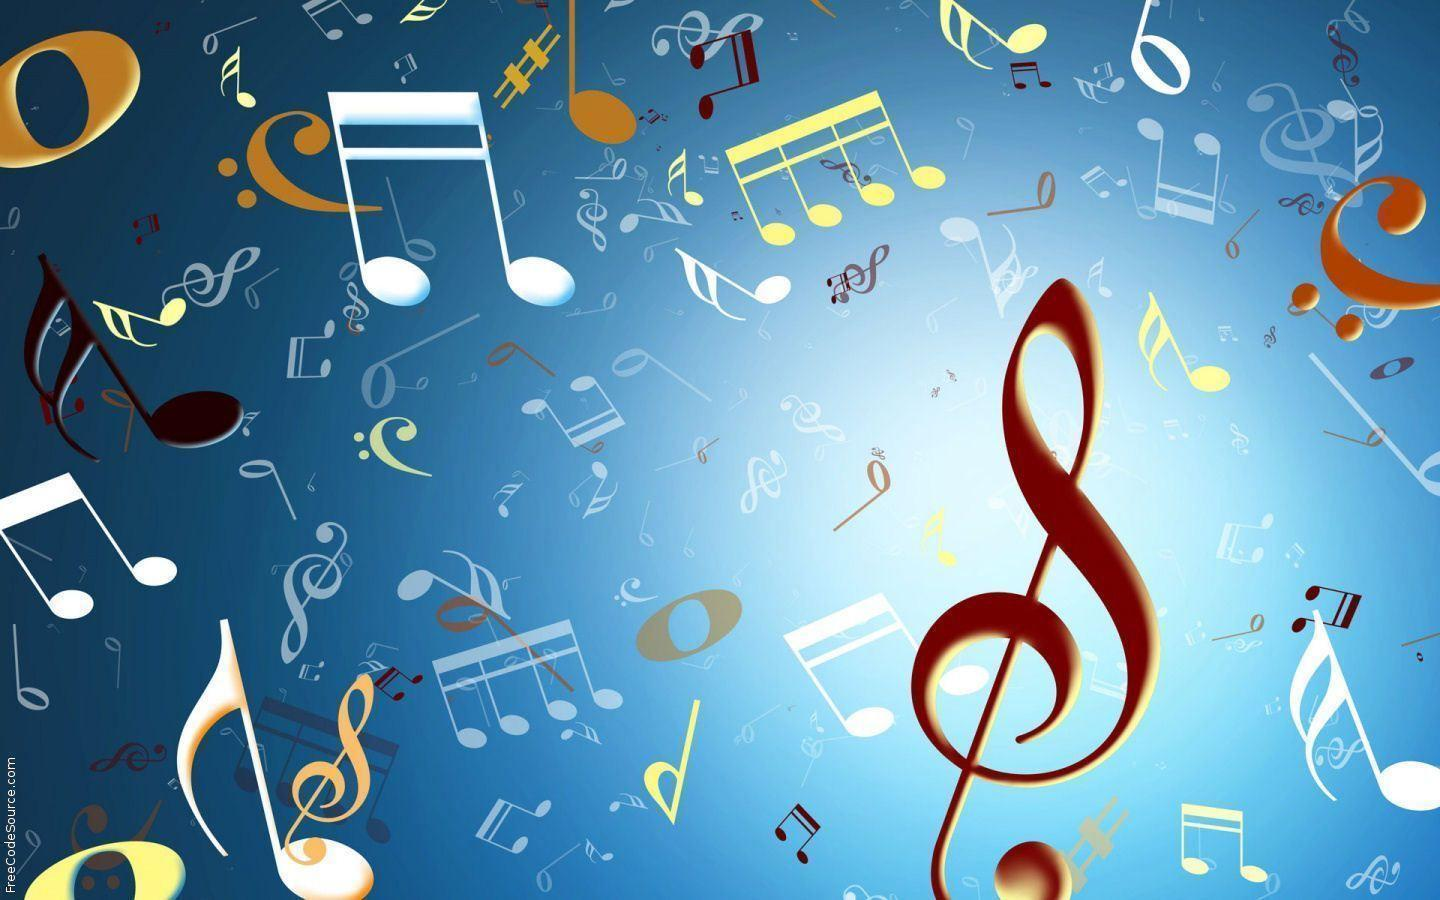 Rainbow Music Notes Background Hd Wallpaper Background Images: Music Notes Backgrounds